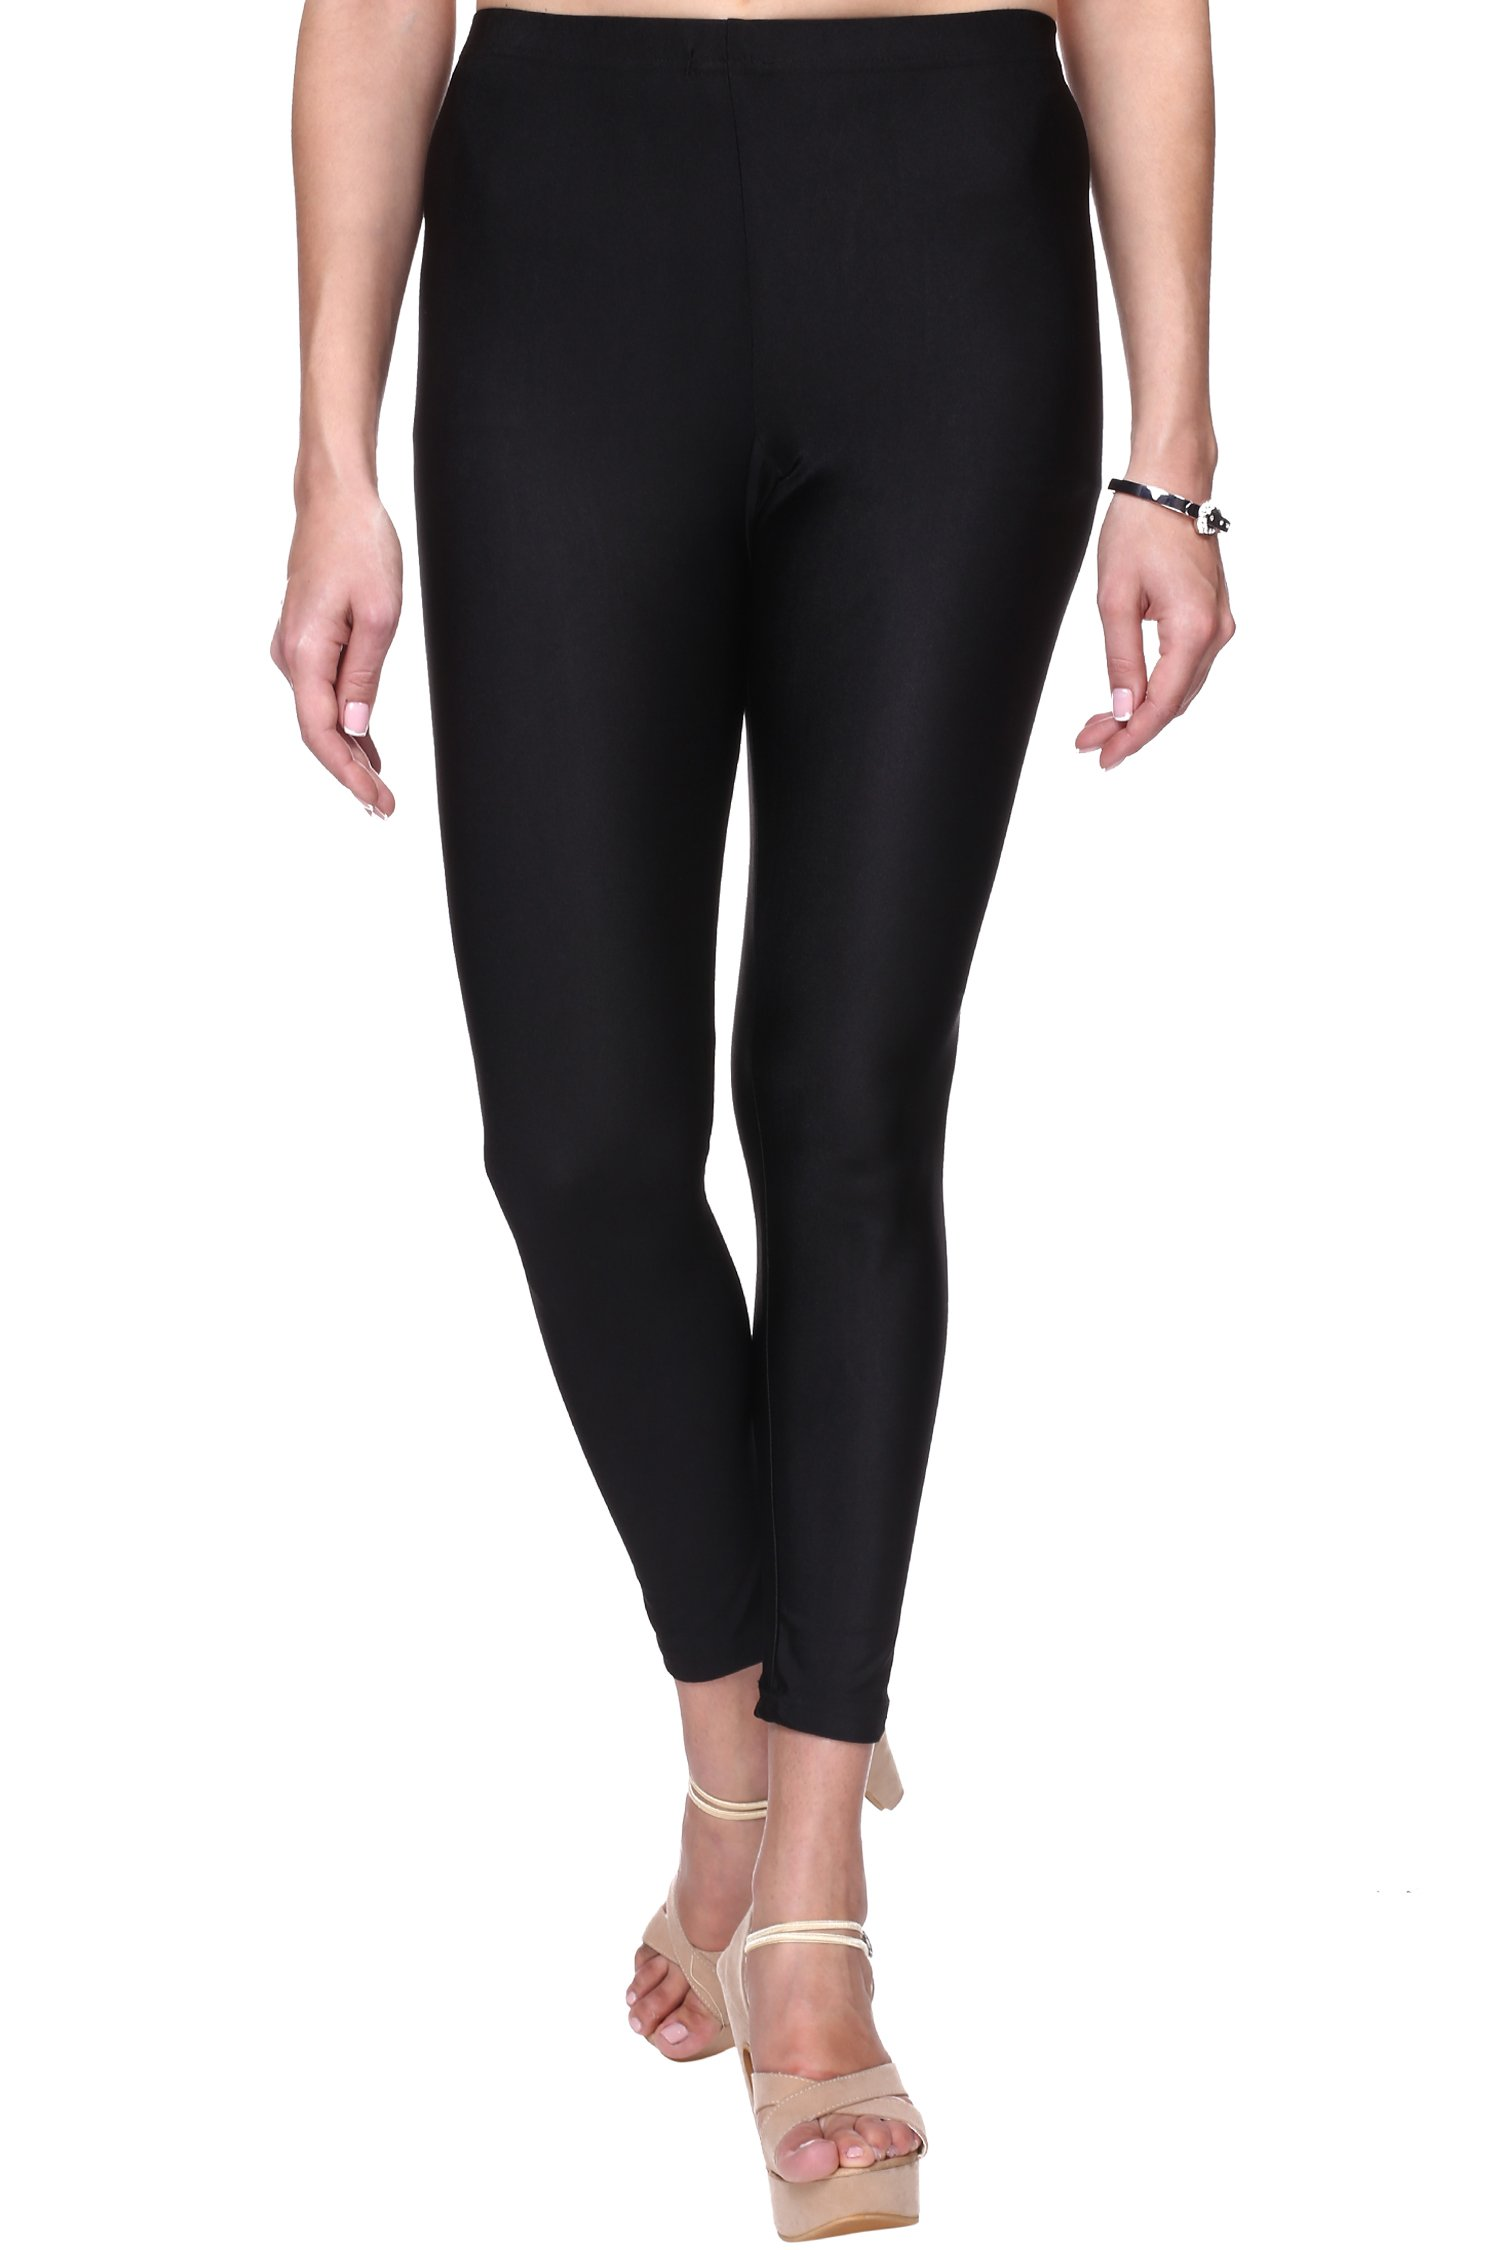 45d2fe64b9587c Trasa Shining Lycra Women's/Girls Ankle Length Shiny Leggings - Available  Sizes - M,L, XL, 2XL,3XL,4XL (Brand Outlet) - Gia Designer